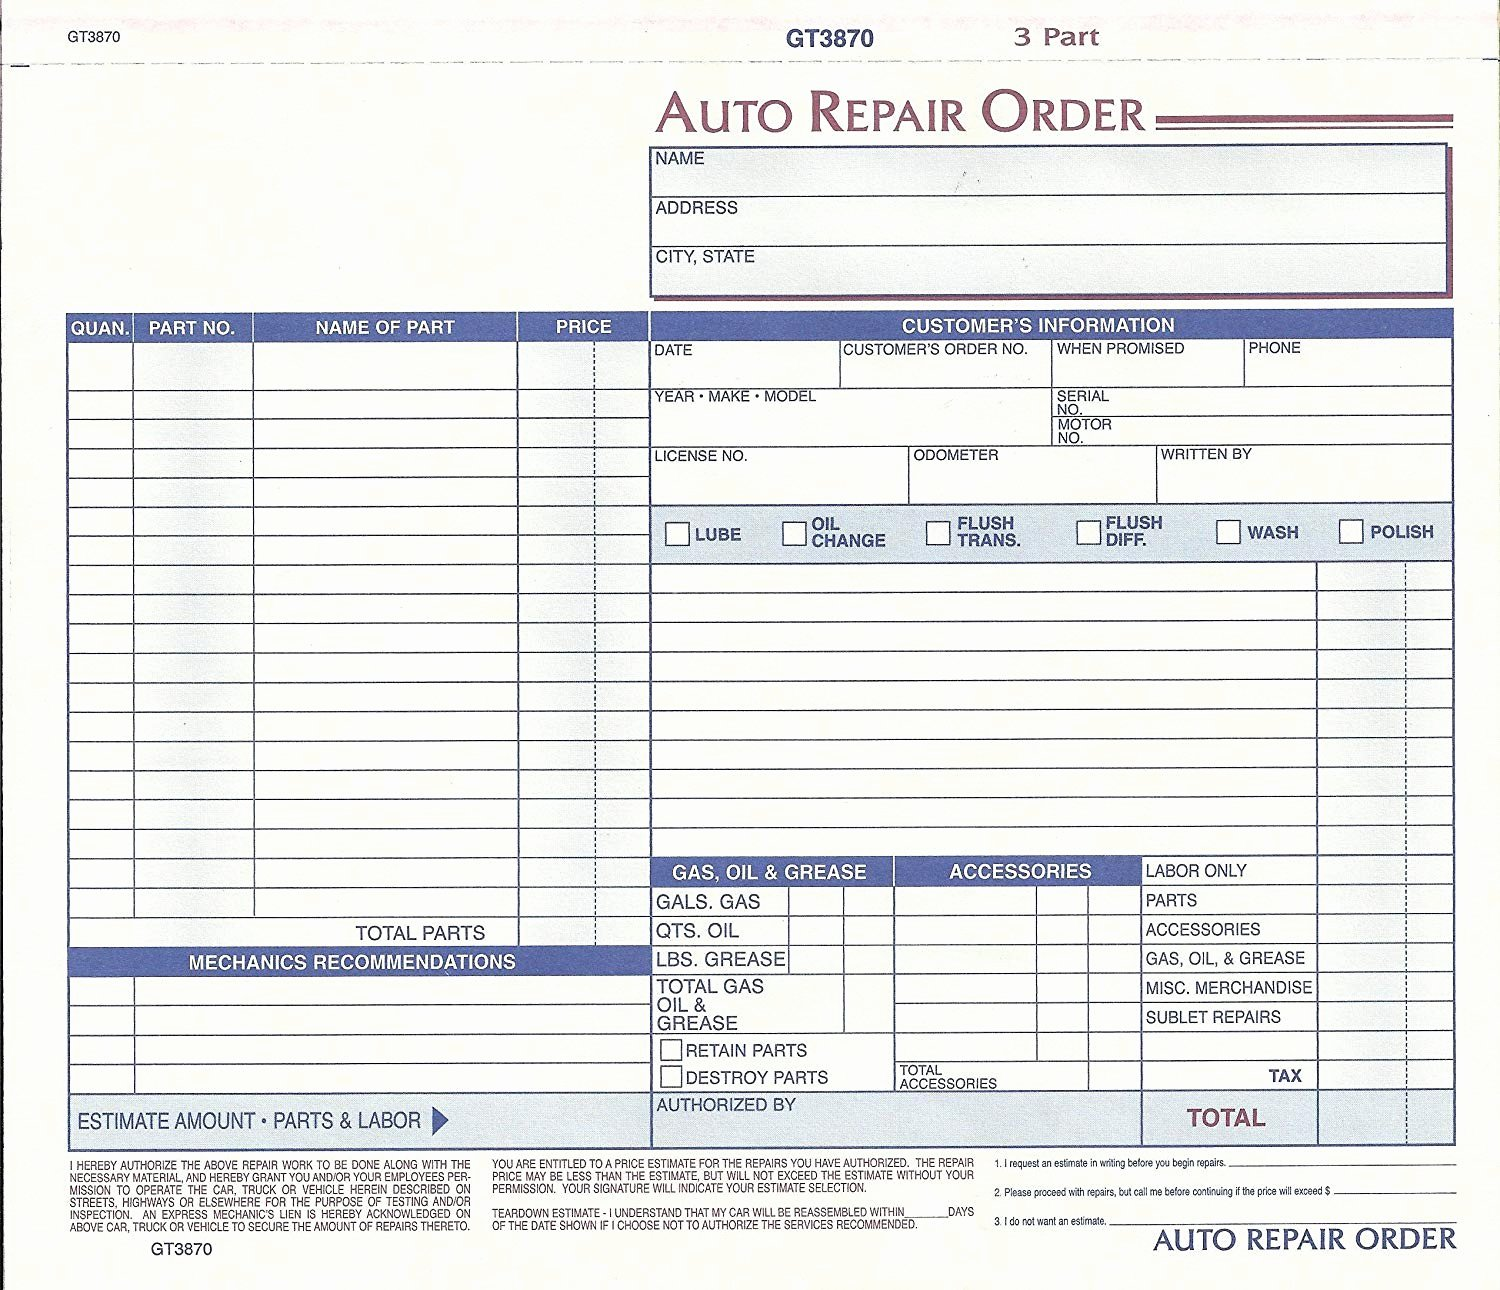 Garage Repair order forms Lovely New Repair order forms Konoplja Co